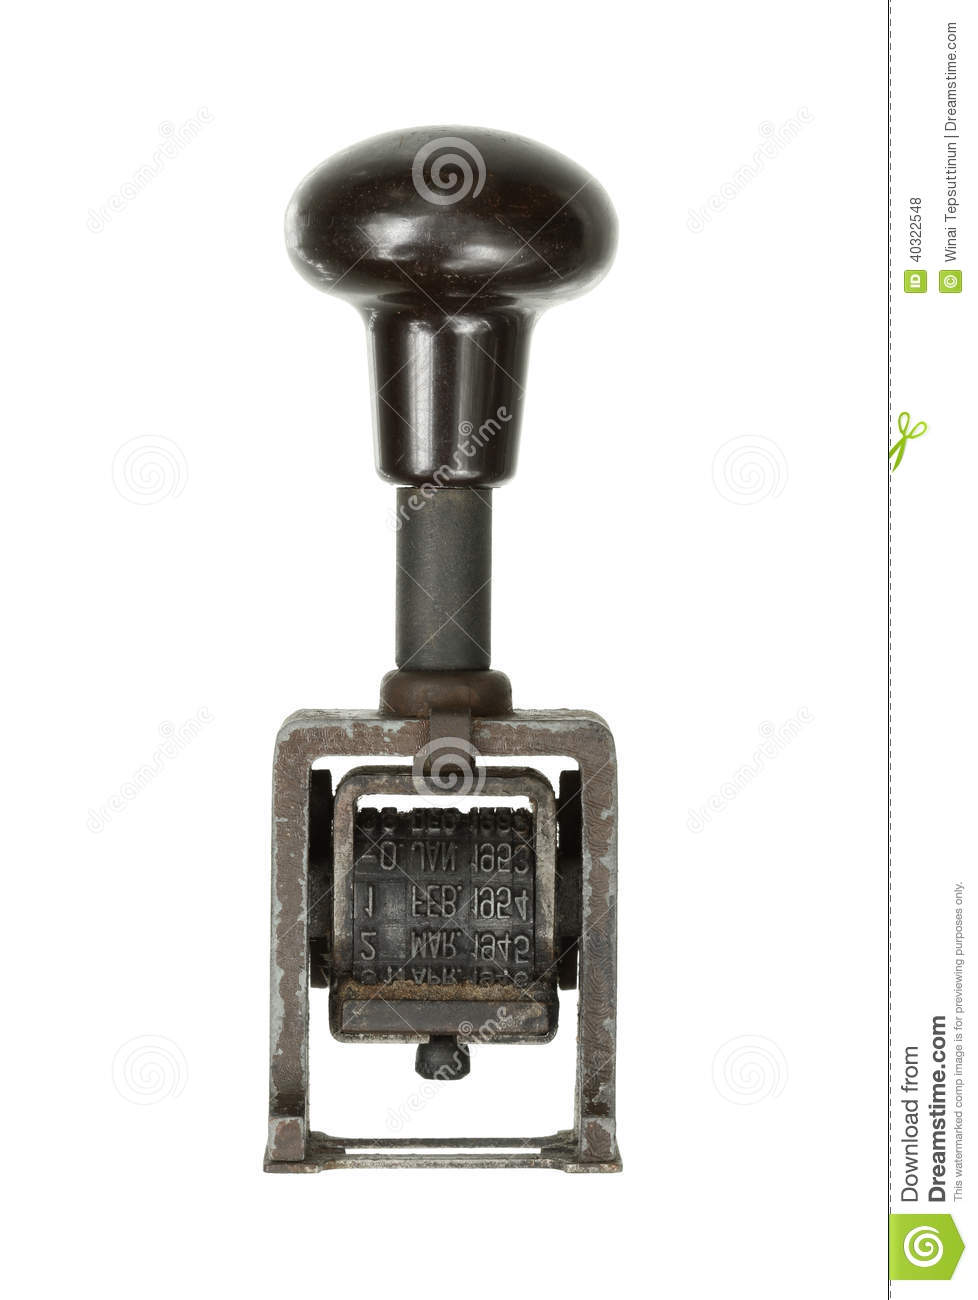 Finest Date stamp stock photo. Image of ancient, aged, antique - 40322548 OR85